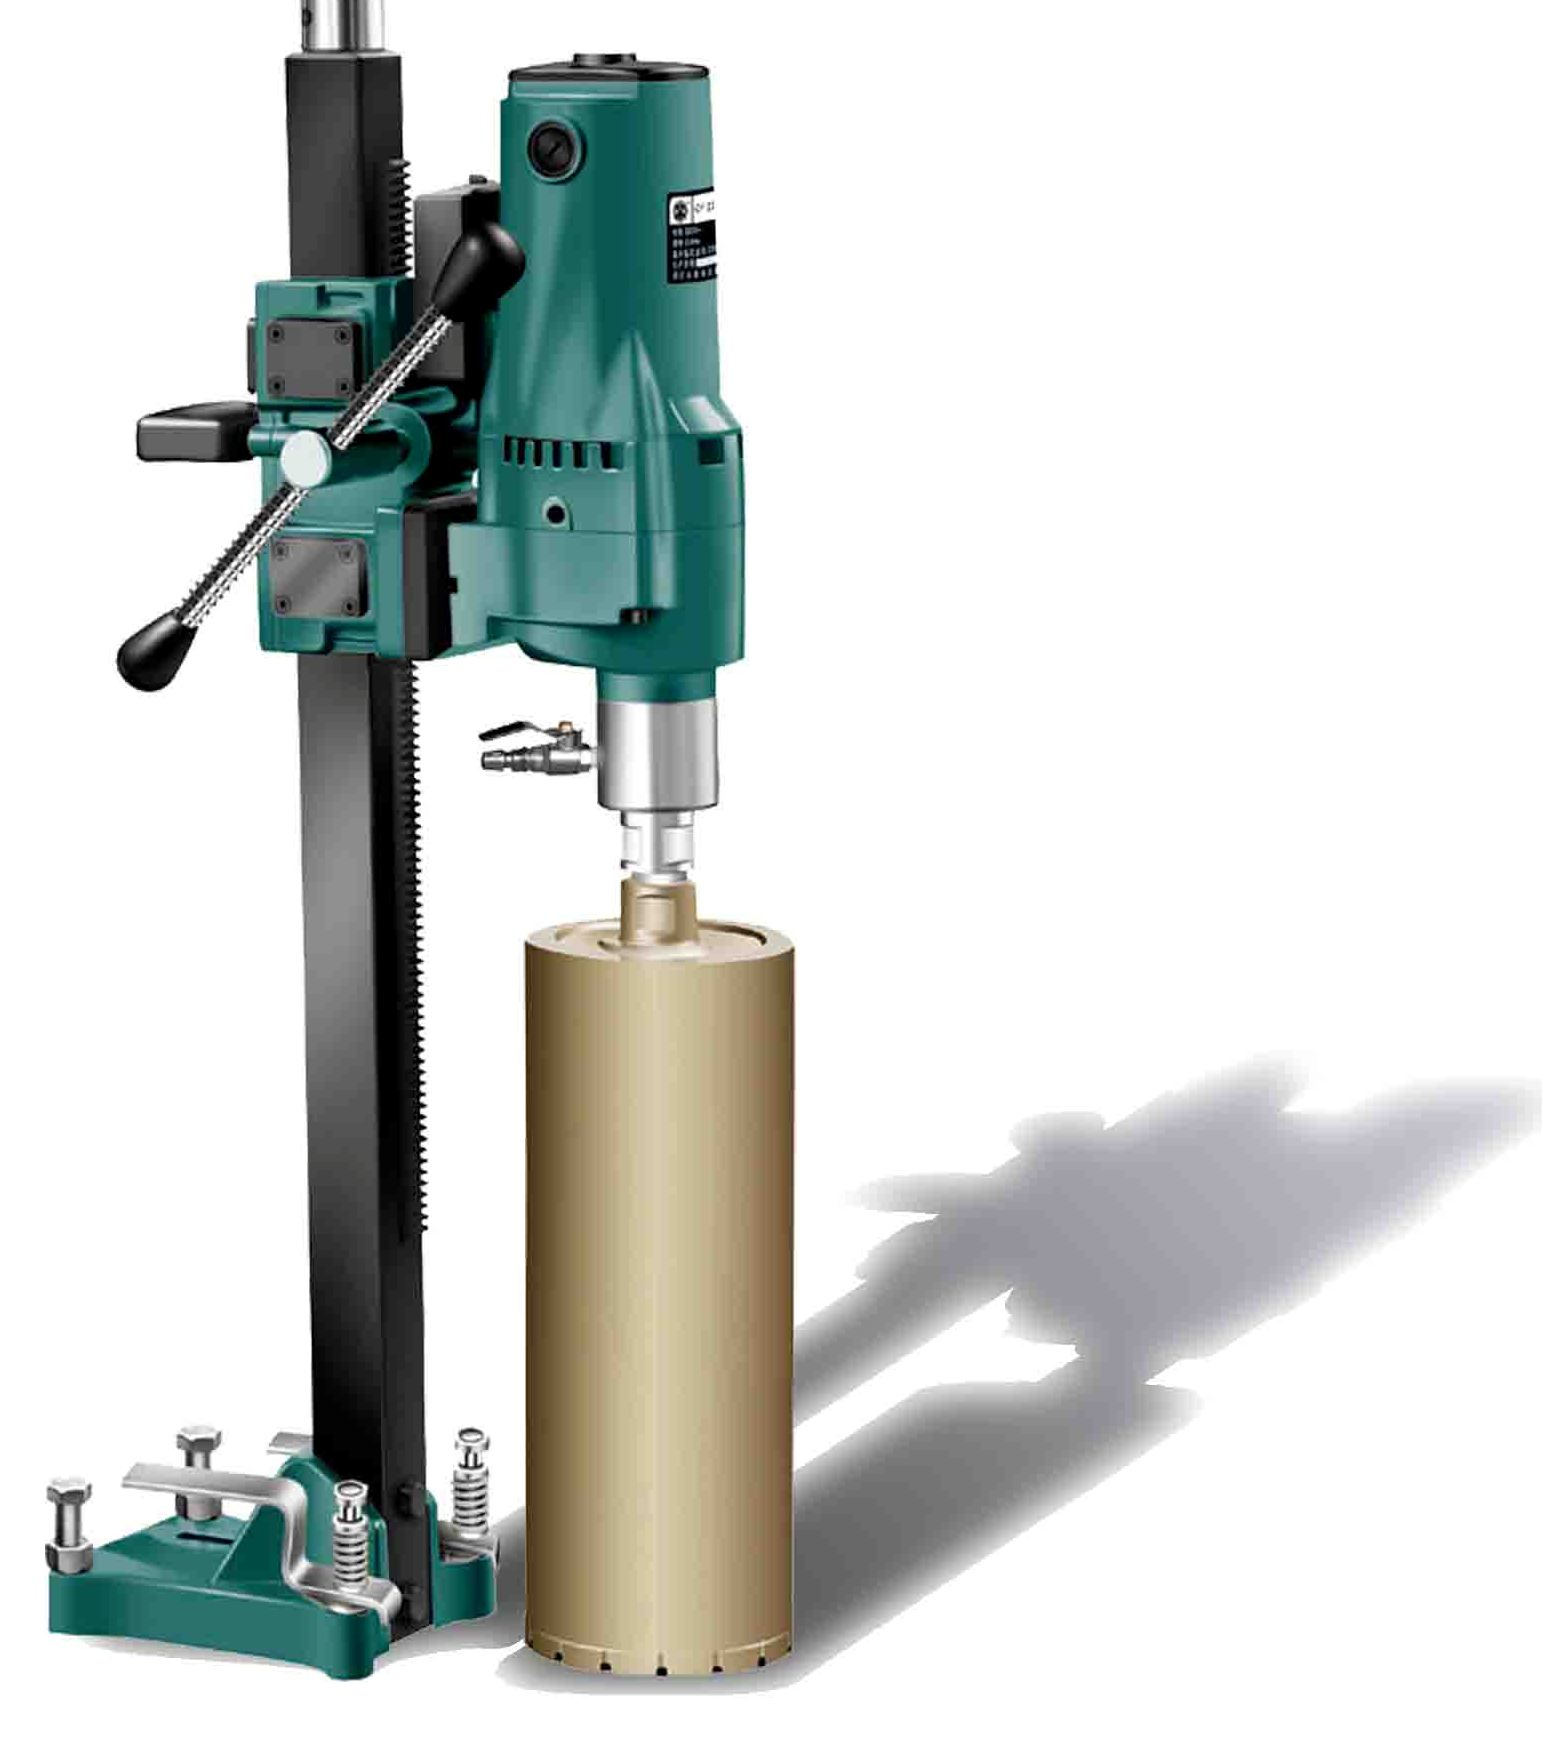 Wood Lifting Devices : Diamond core drill jzx power tools engineering